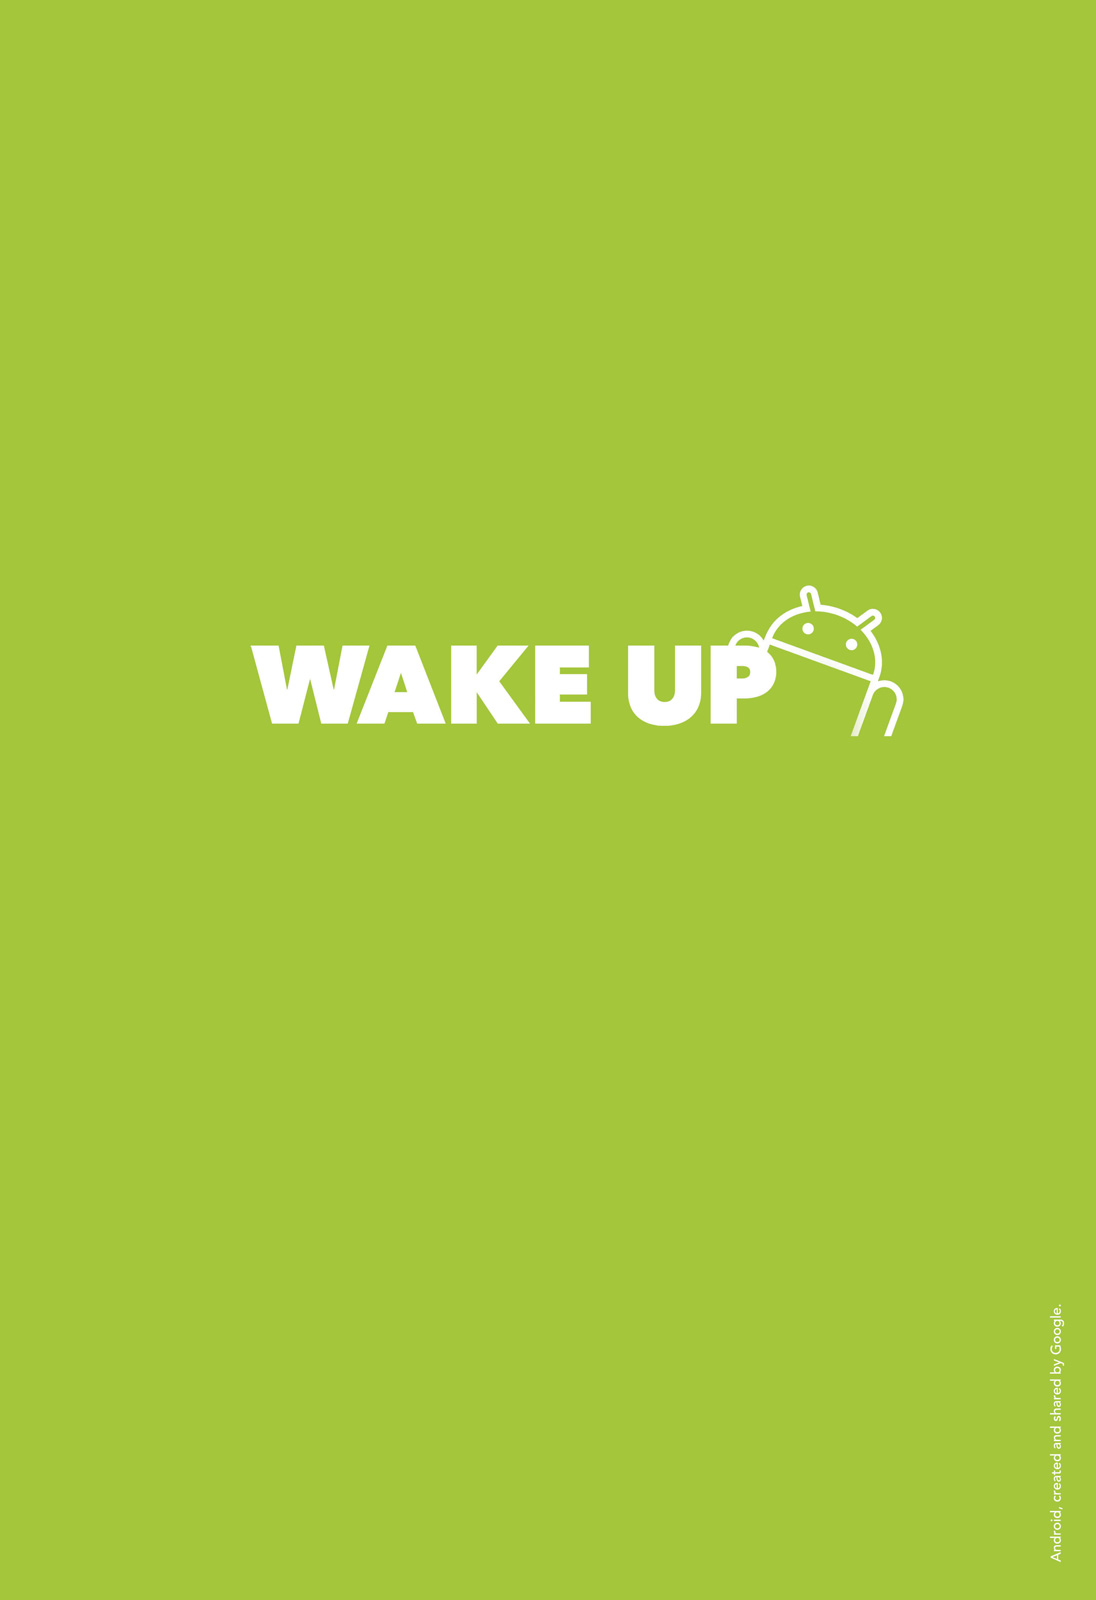 Wake Up - Android